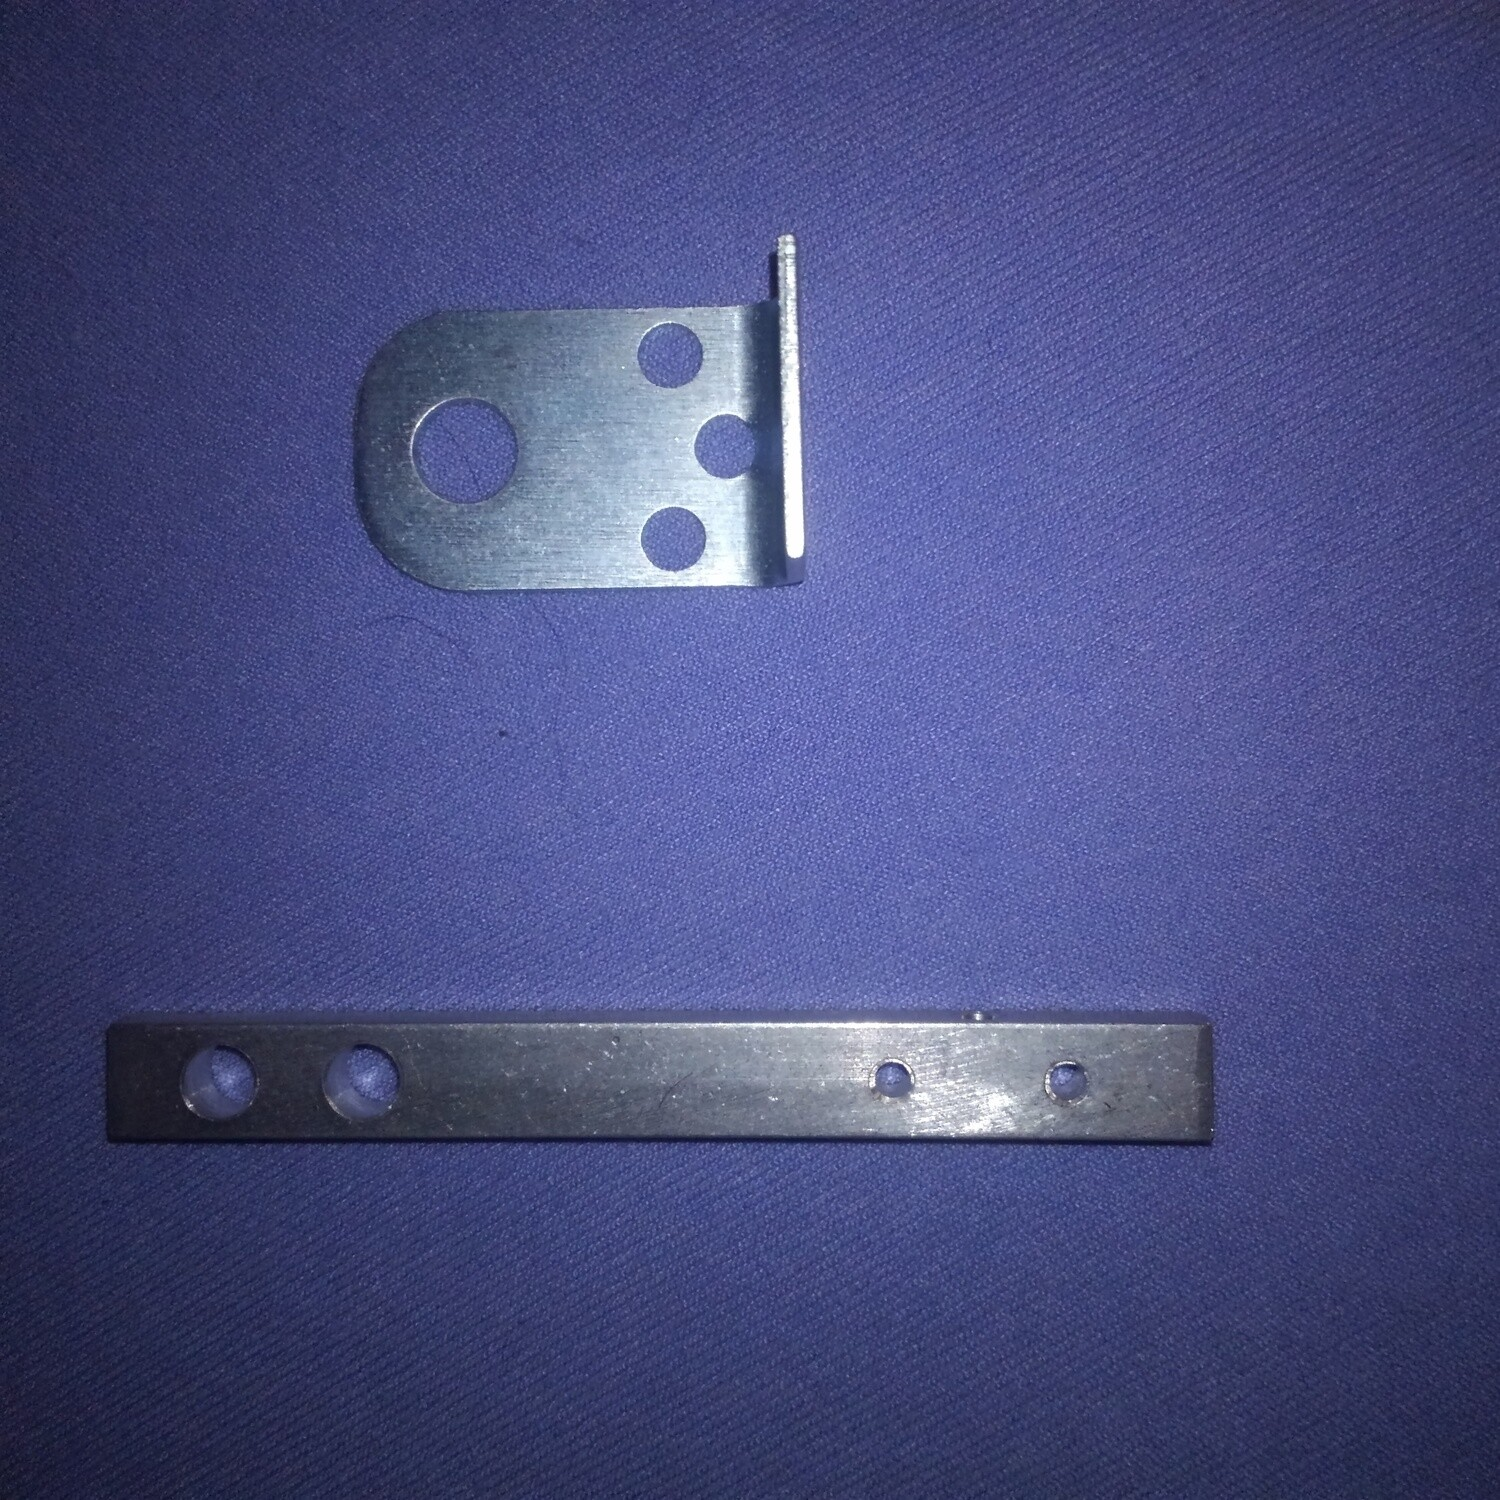 Housing and cable brackets